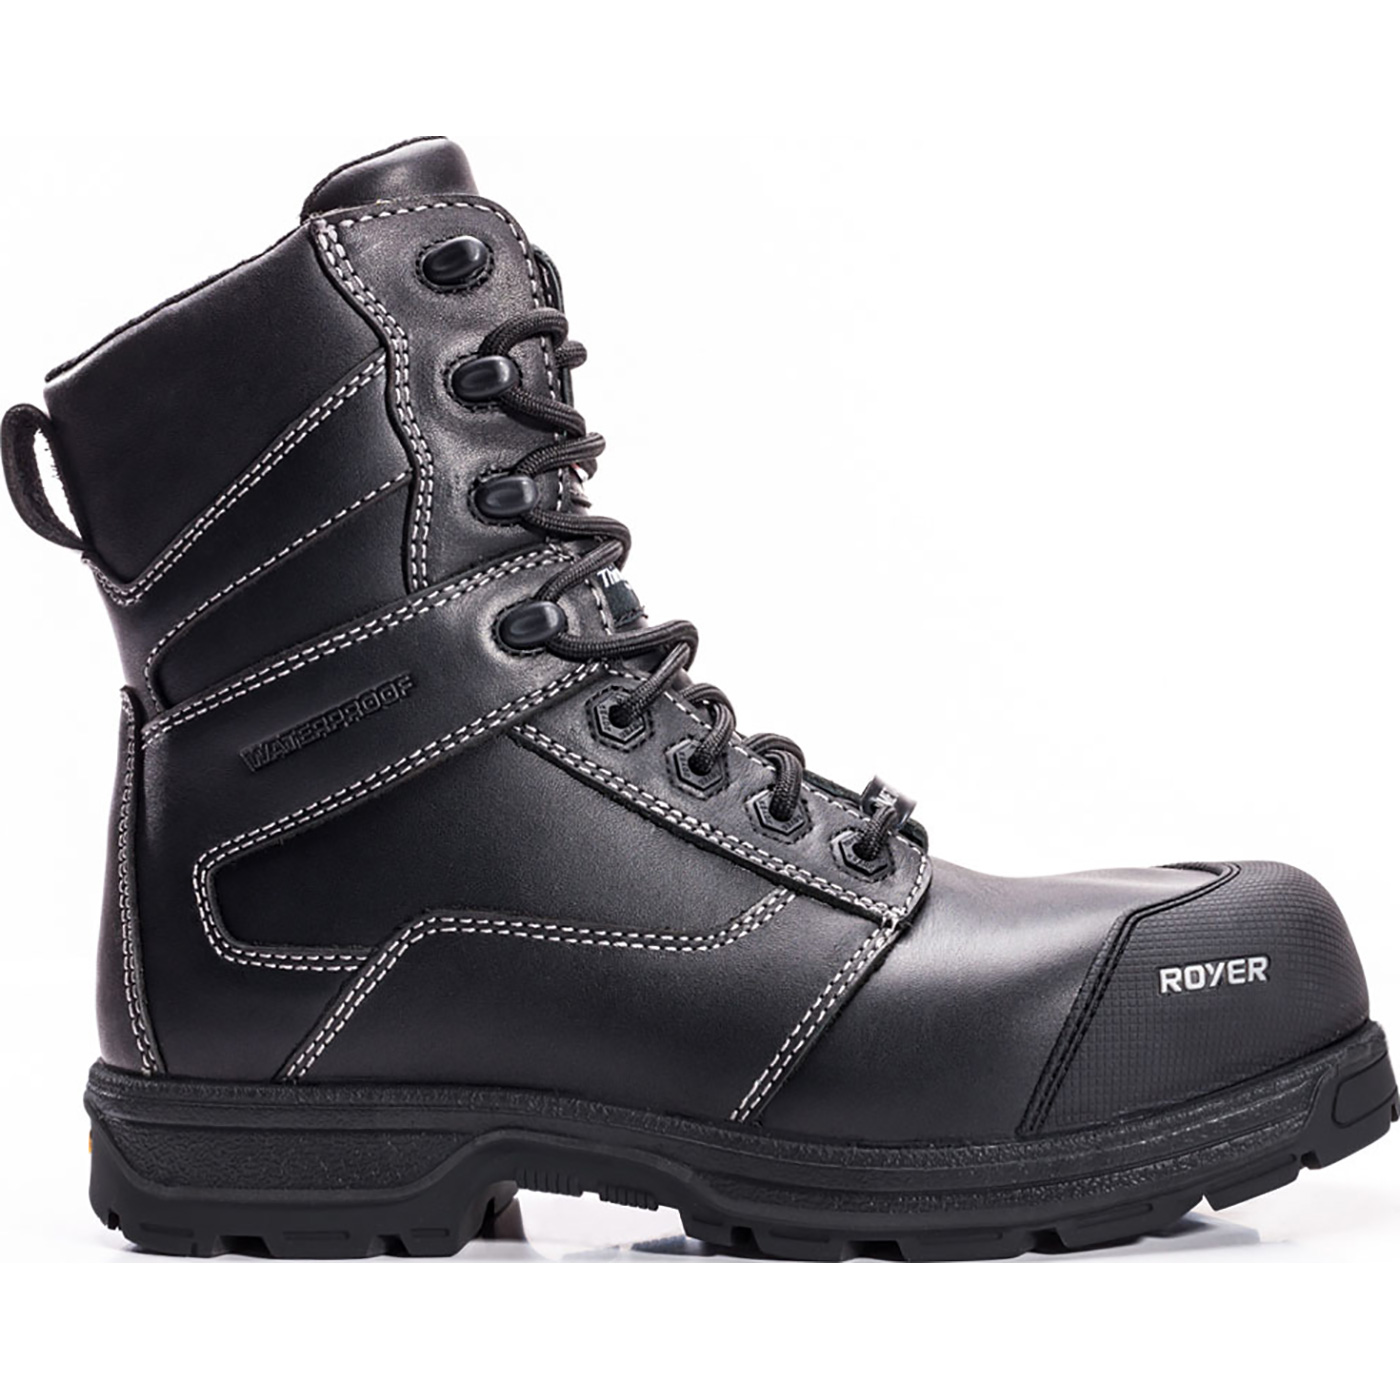 49d06fec24a Royer Agility Arctic Grip Men's 8 inch Composite Toe CSA Puncture-Resistant  Waterproof 400G Insulated Work Boot